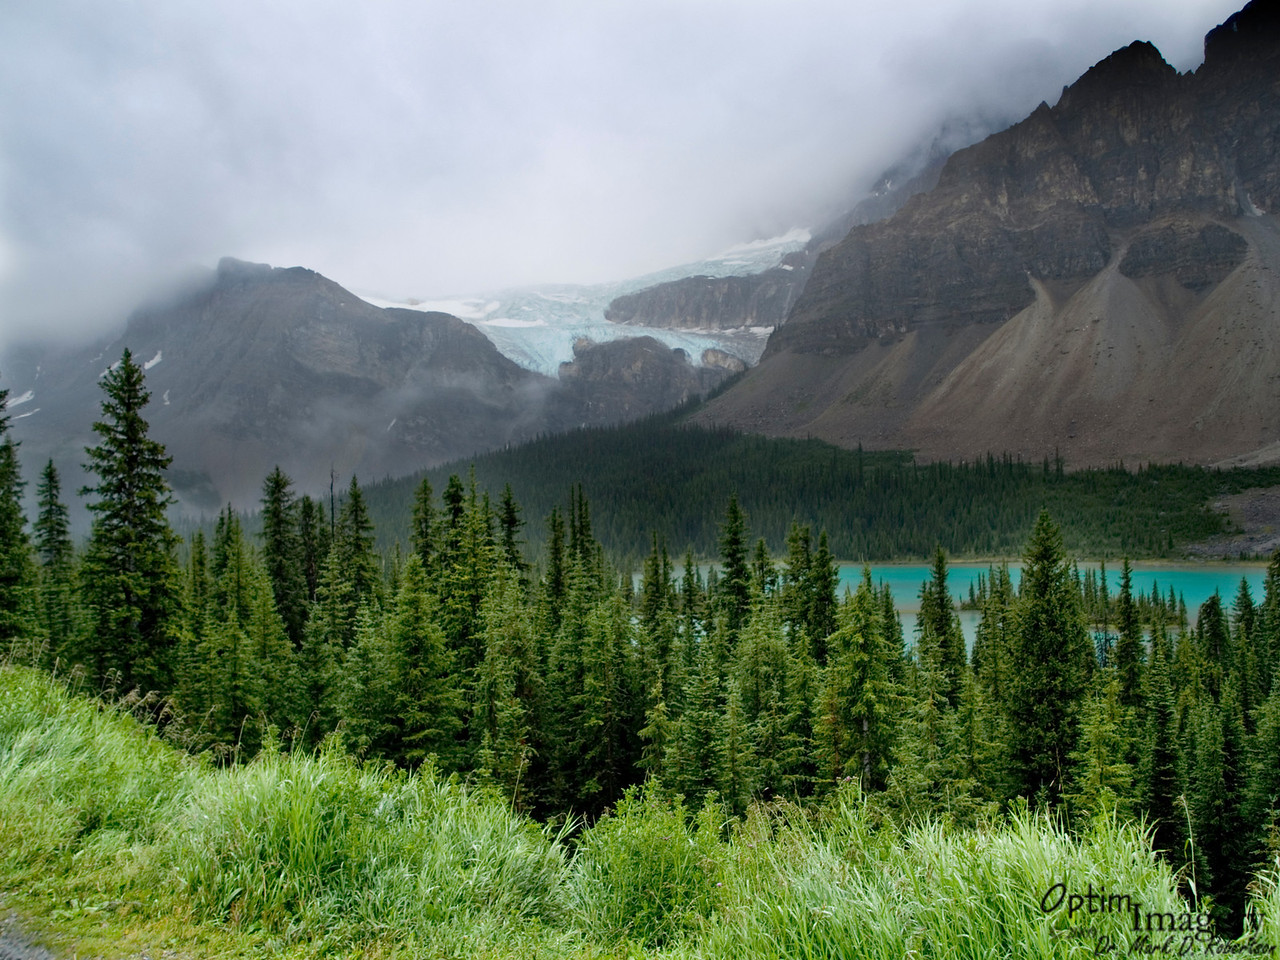 """After a nice, relaxing night in Banff, we headed north along the Icefields Parkway.  Here we are looking to the west, across the Bow River, to Crowfoot Glacier hanging up on the cliff.  I remember the first time I saw glaciers, and how mesmerized I was at the radiant, turquoise glow.  I had expected them to be white, but they are not.  More on that later.  This poor crow has lost one toe.  When it was named, it had an extension below the lower one you see here.  That """"toe"""" has receded over the years since then.  However, the ice cliff you see at the lower left portion of the glacier is still 50 m (160 feet) tall."""